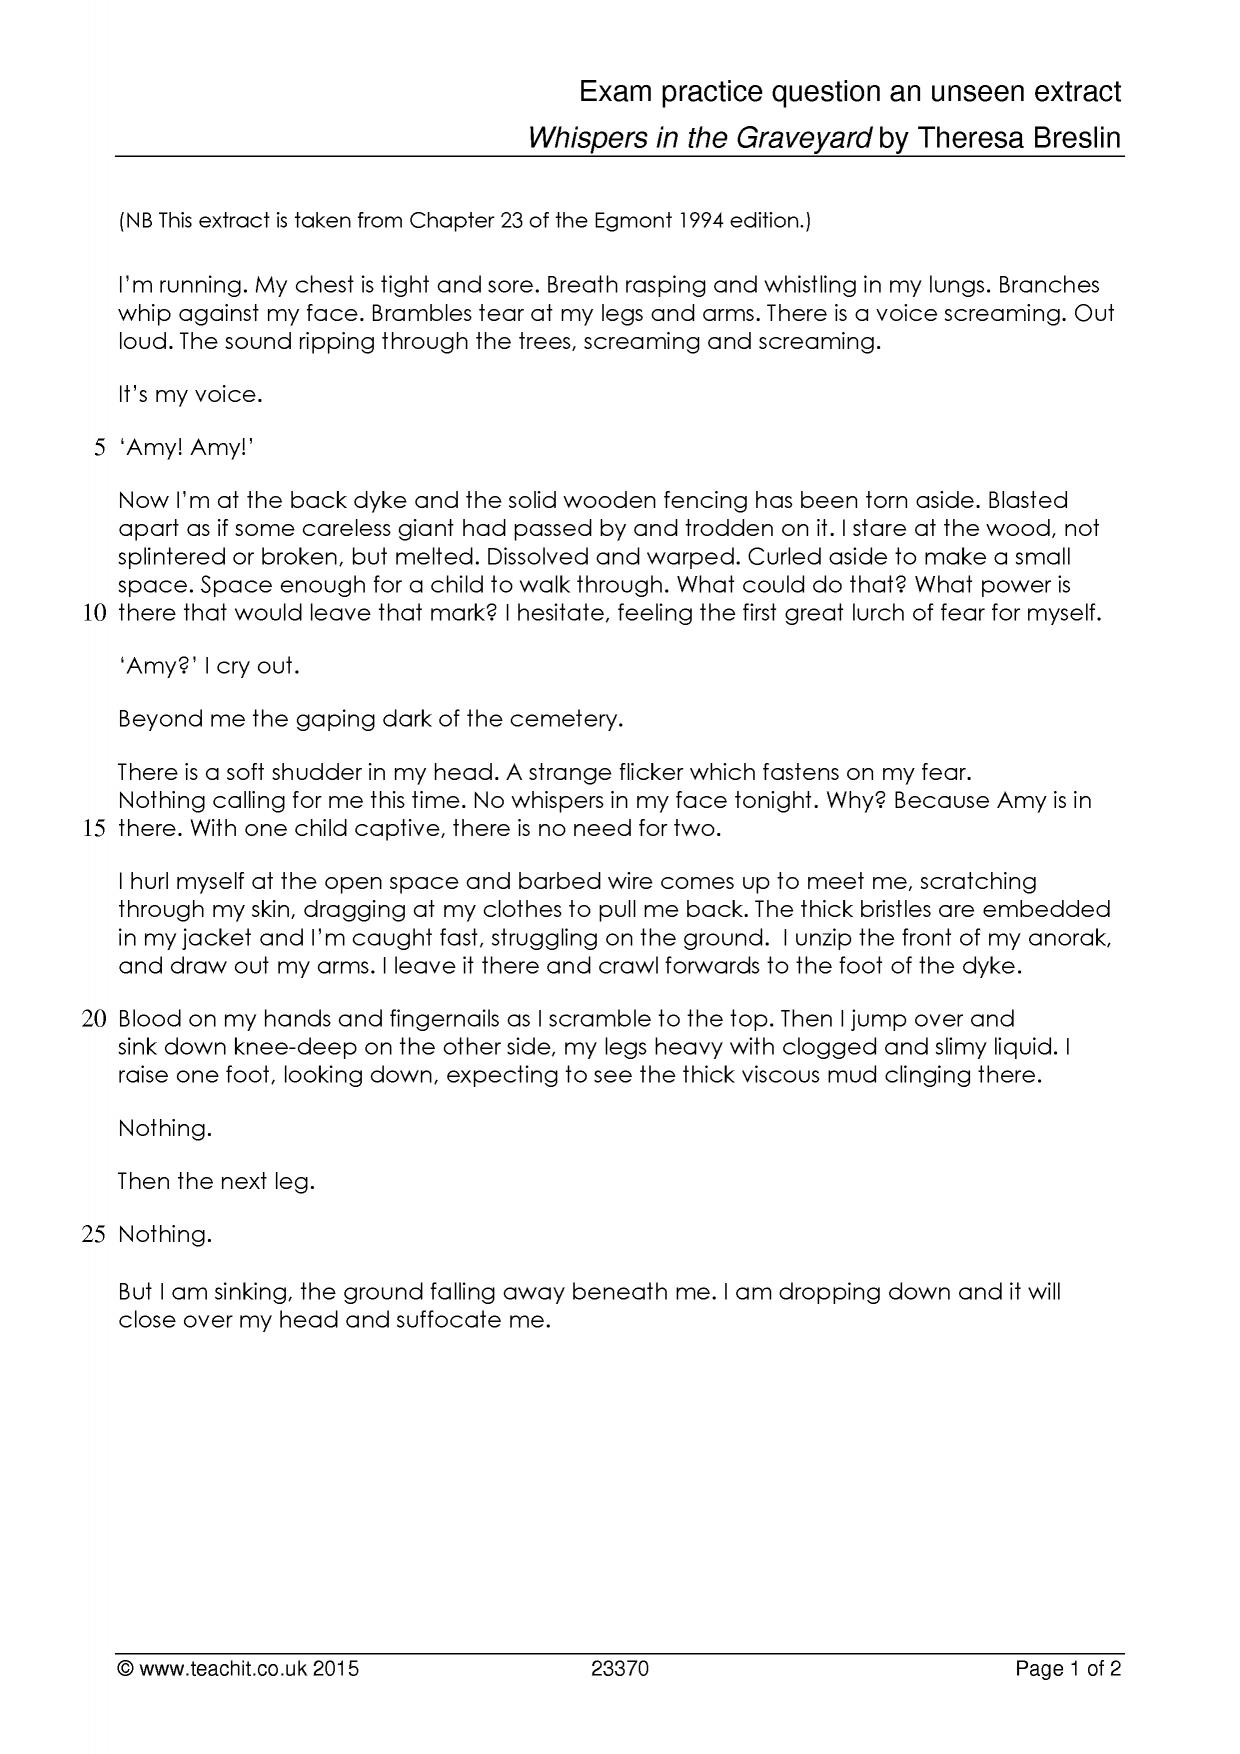 the graveyard book essay questions 47 questions - matching, multiple choice, short answer, and essay based on the graveyard book by neil gaiman.